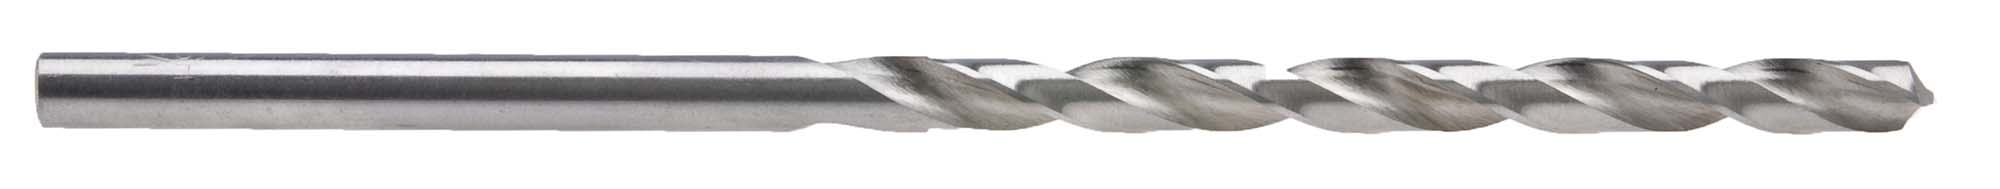 "V (.377"") ""Taper Length"" Long Straight Shank Drill Bit, High Speed Steel"